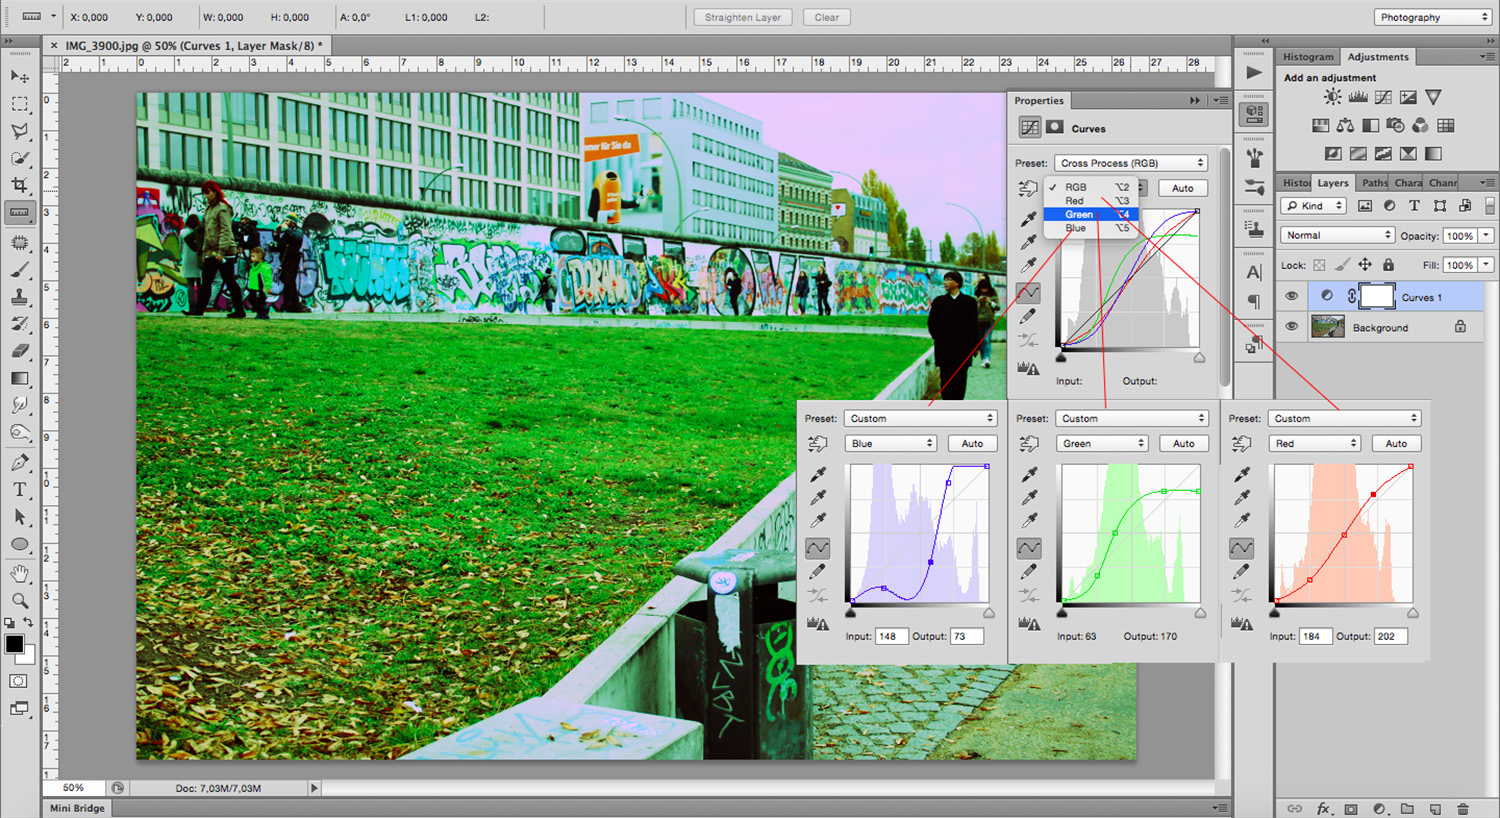 Curves - How To Mimic a Cross-Processing Effect in Photoshop